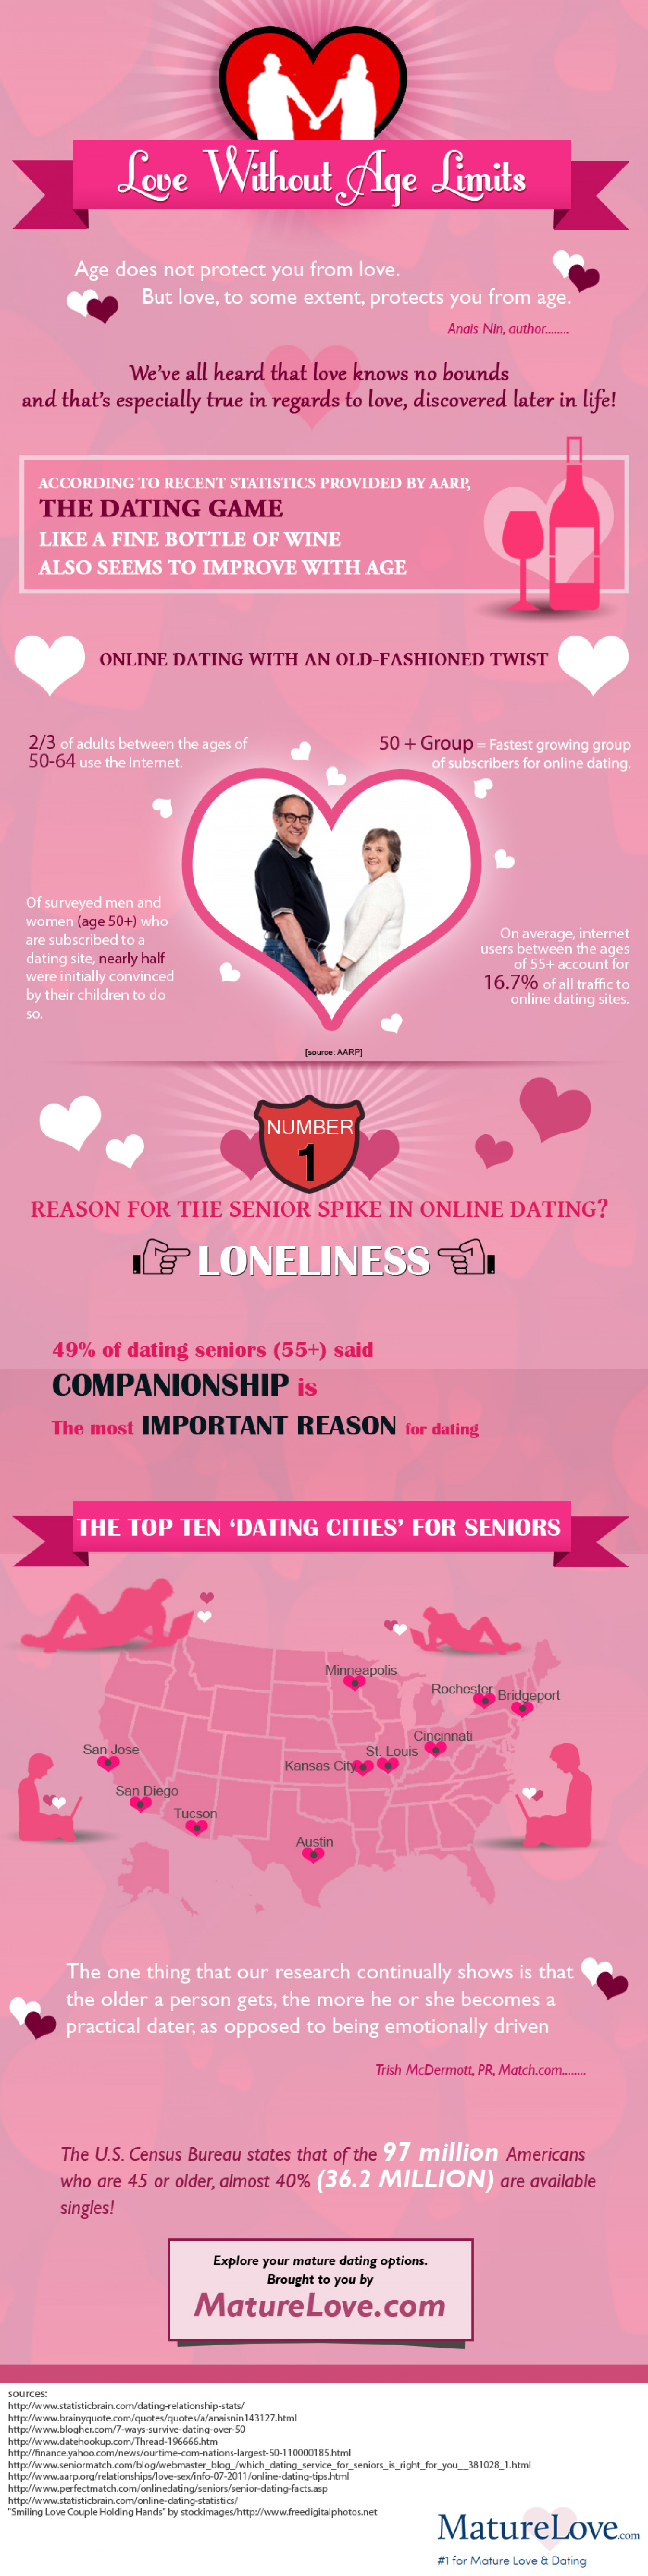 Love Without Age Limits Infographic